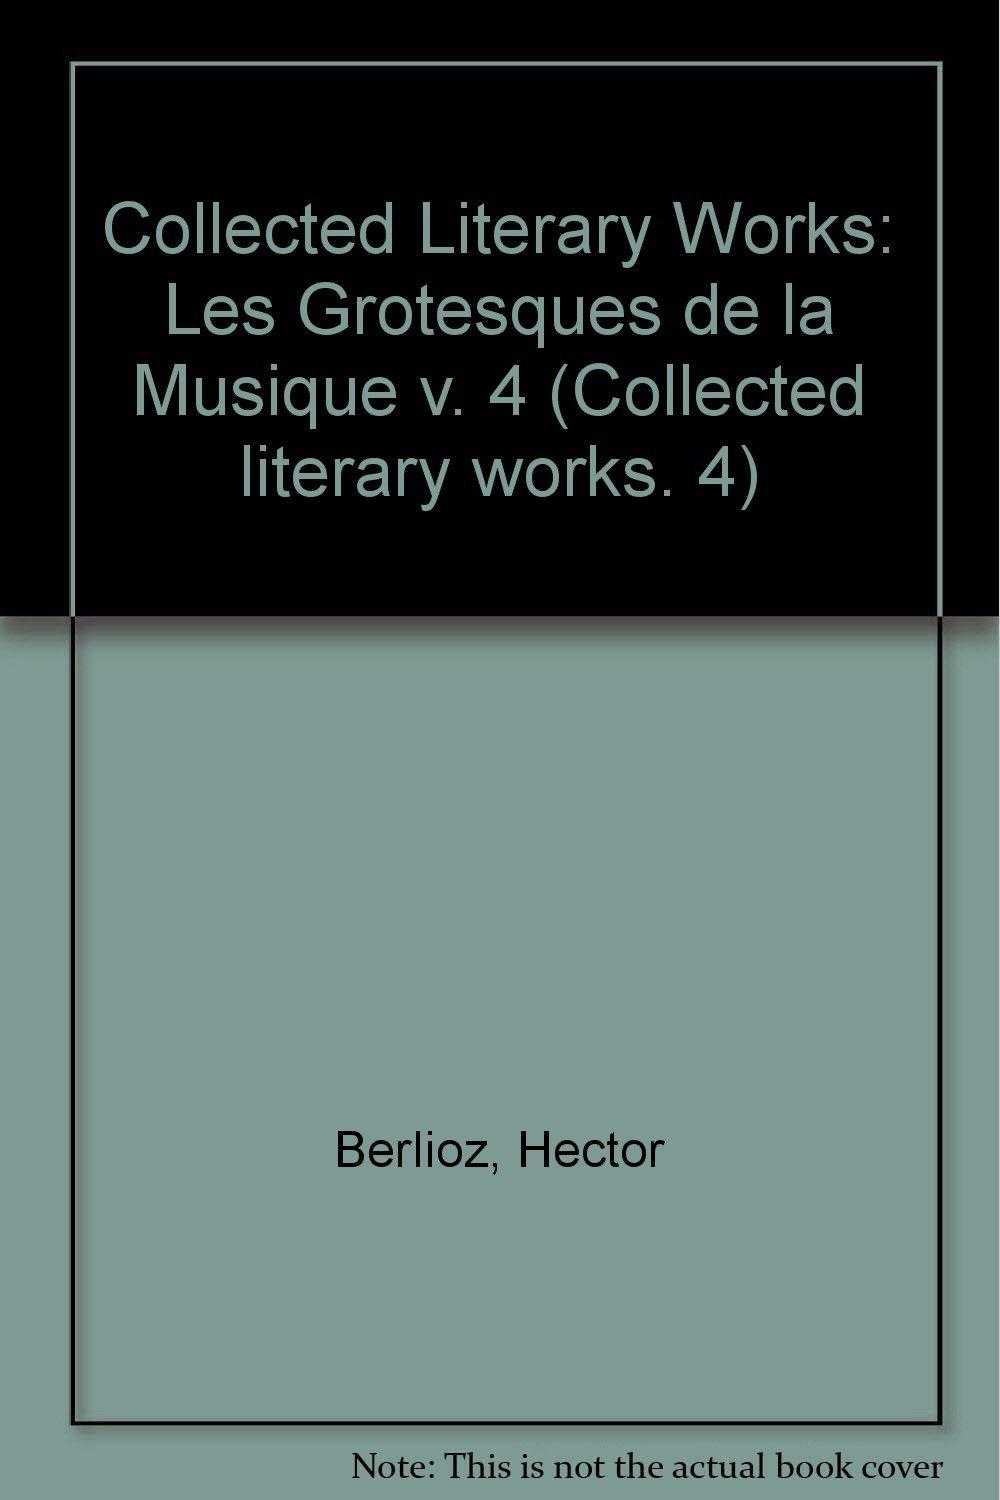 Collected Literary Works: Les Grotesques de la Musique v. 4 (Collected litera., Berlioz, Hector